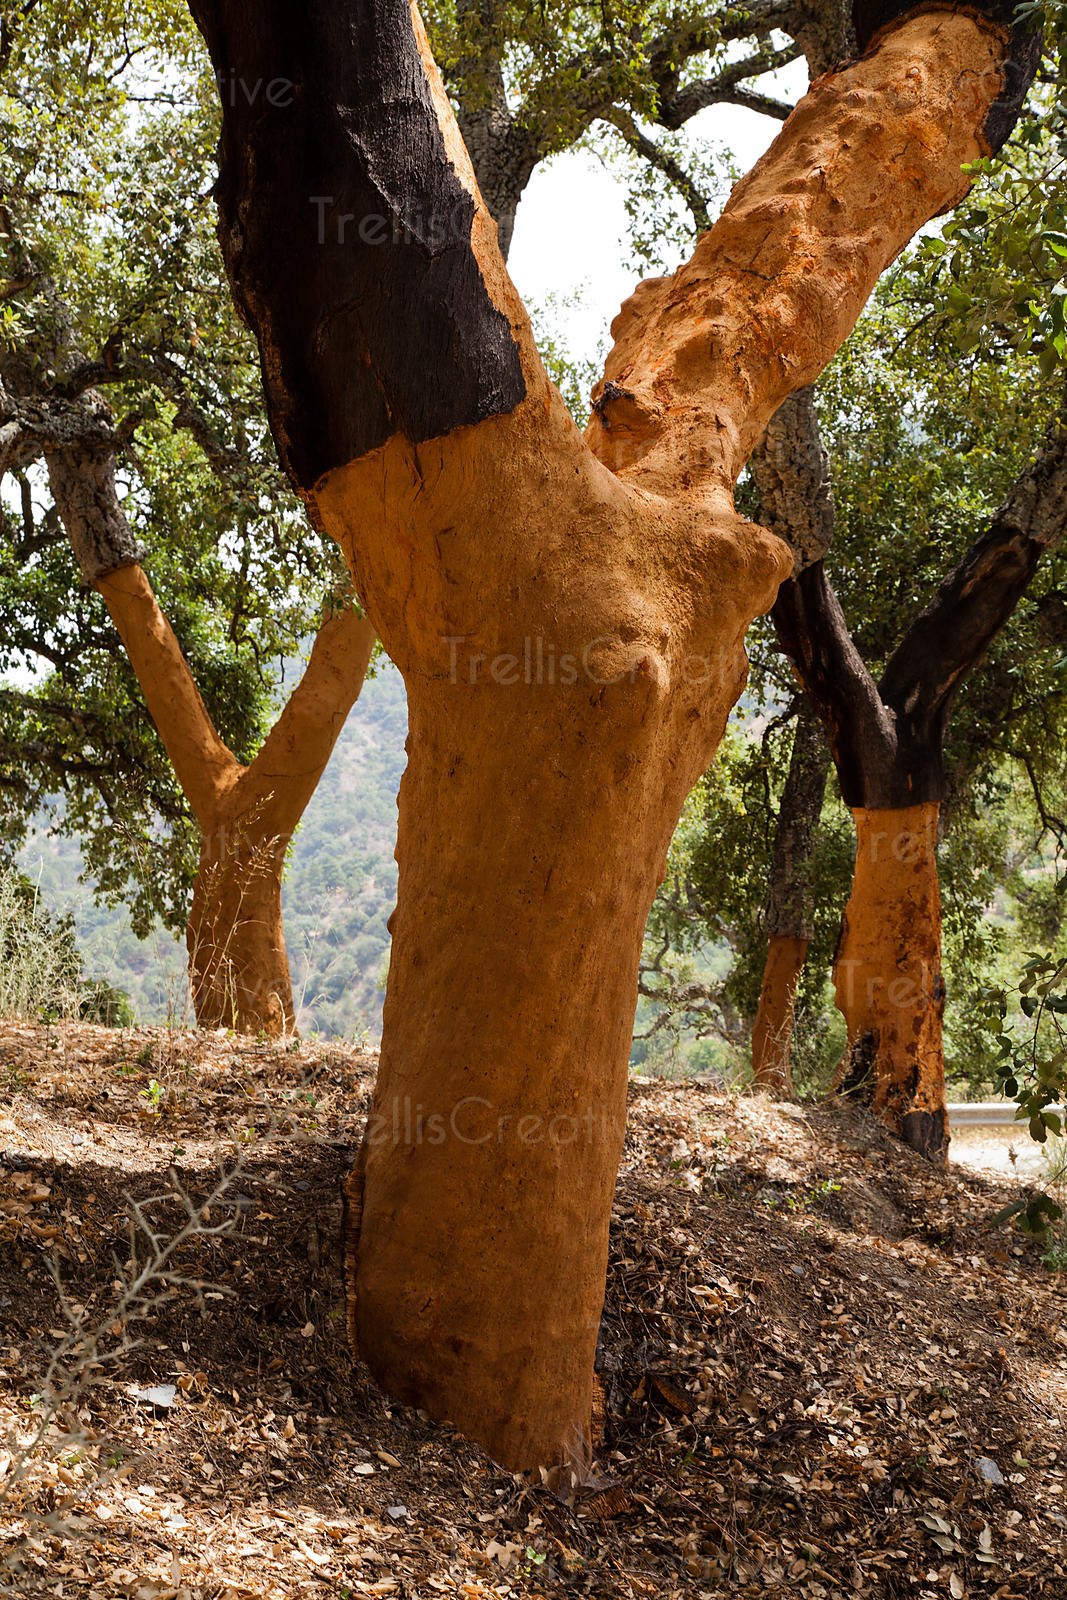 Cork oak trees in Portugal that have been stripped of their bark to make corks